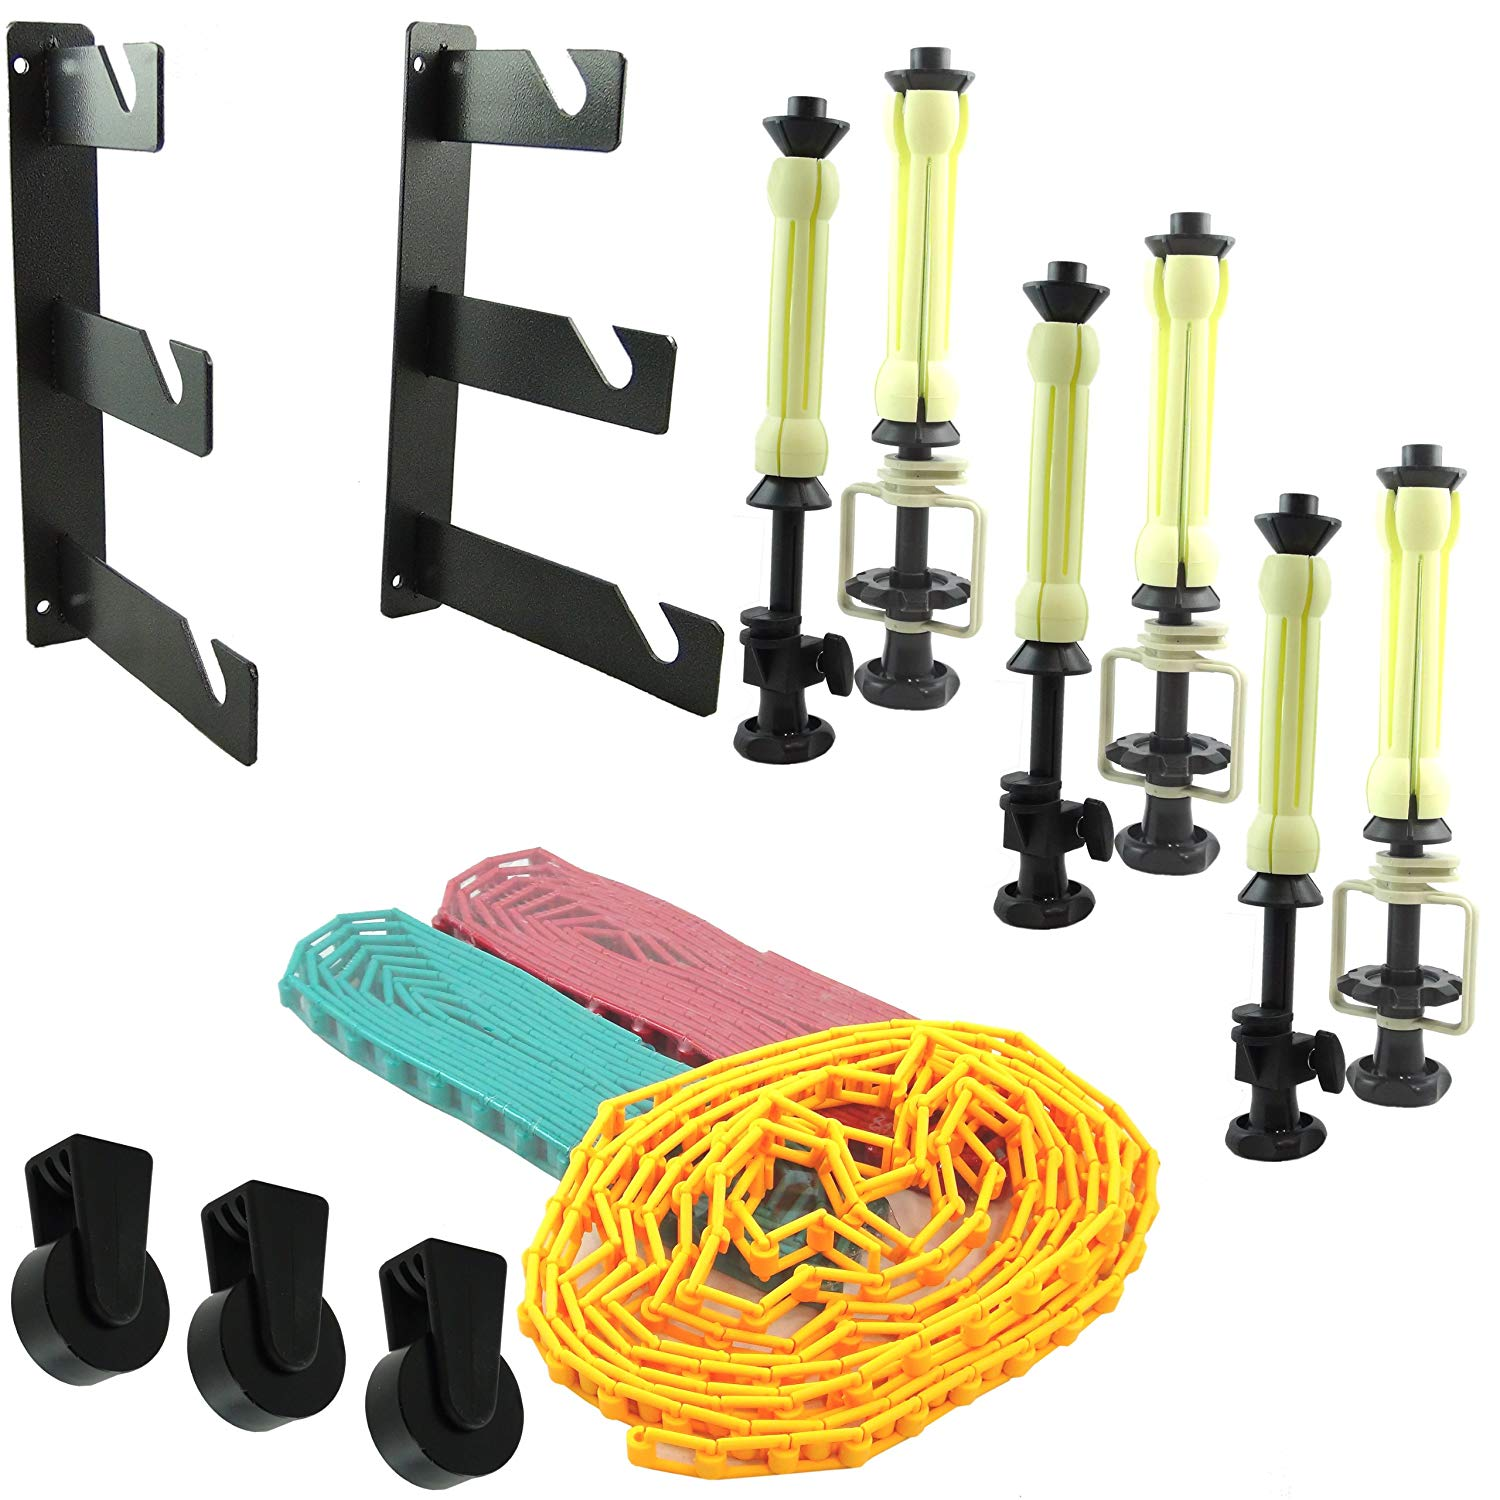 3-Roller Wall Mounting System